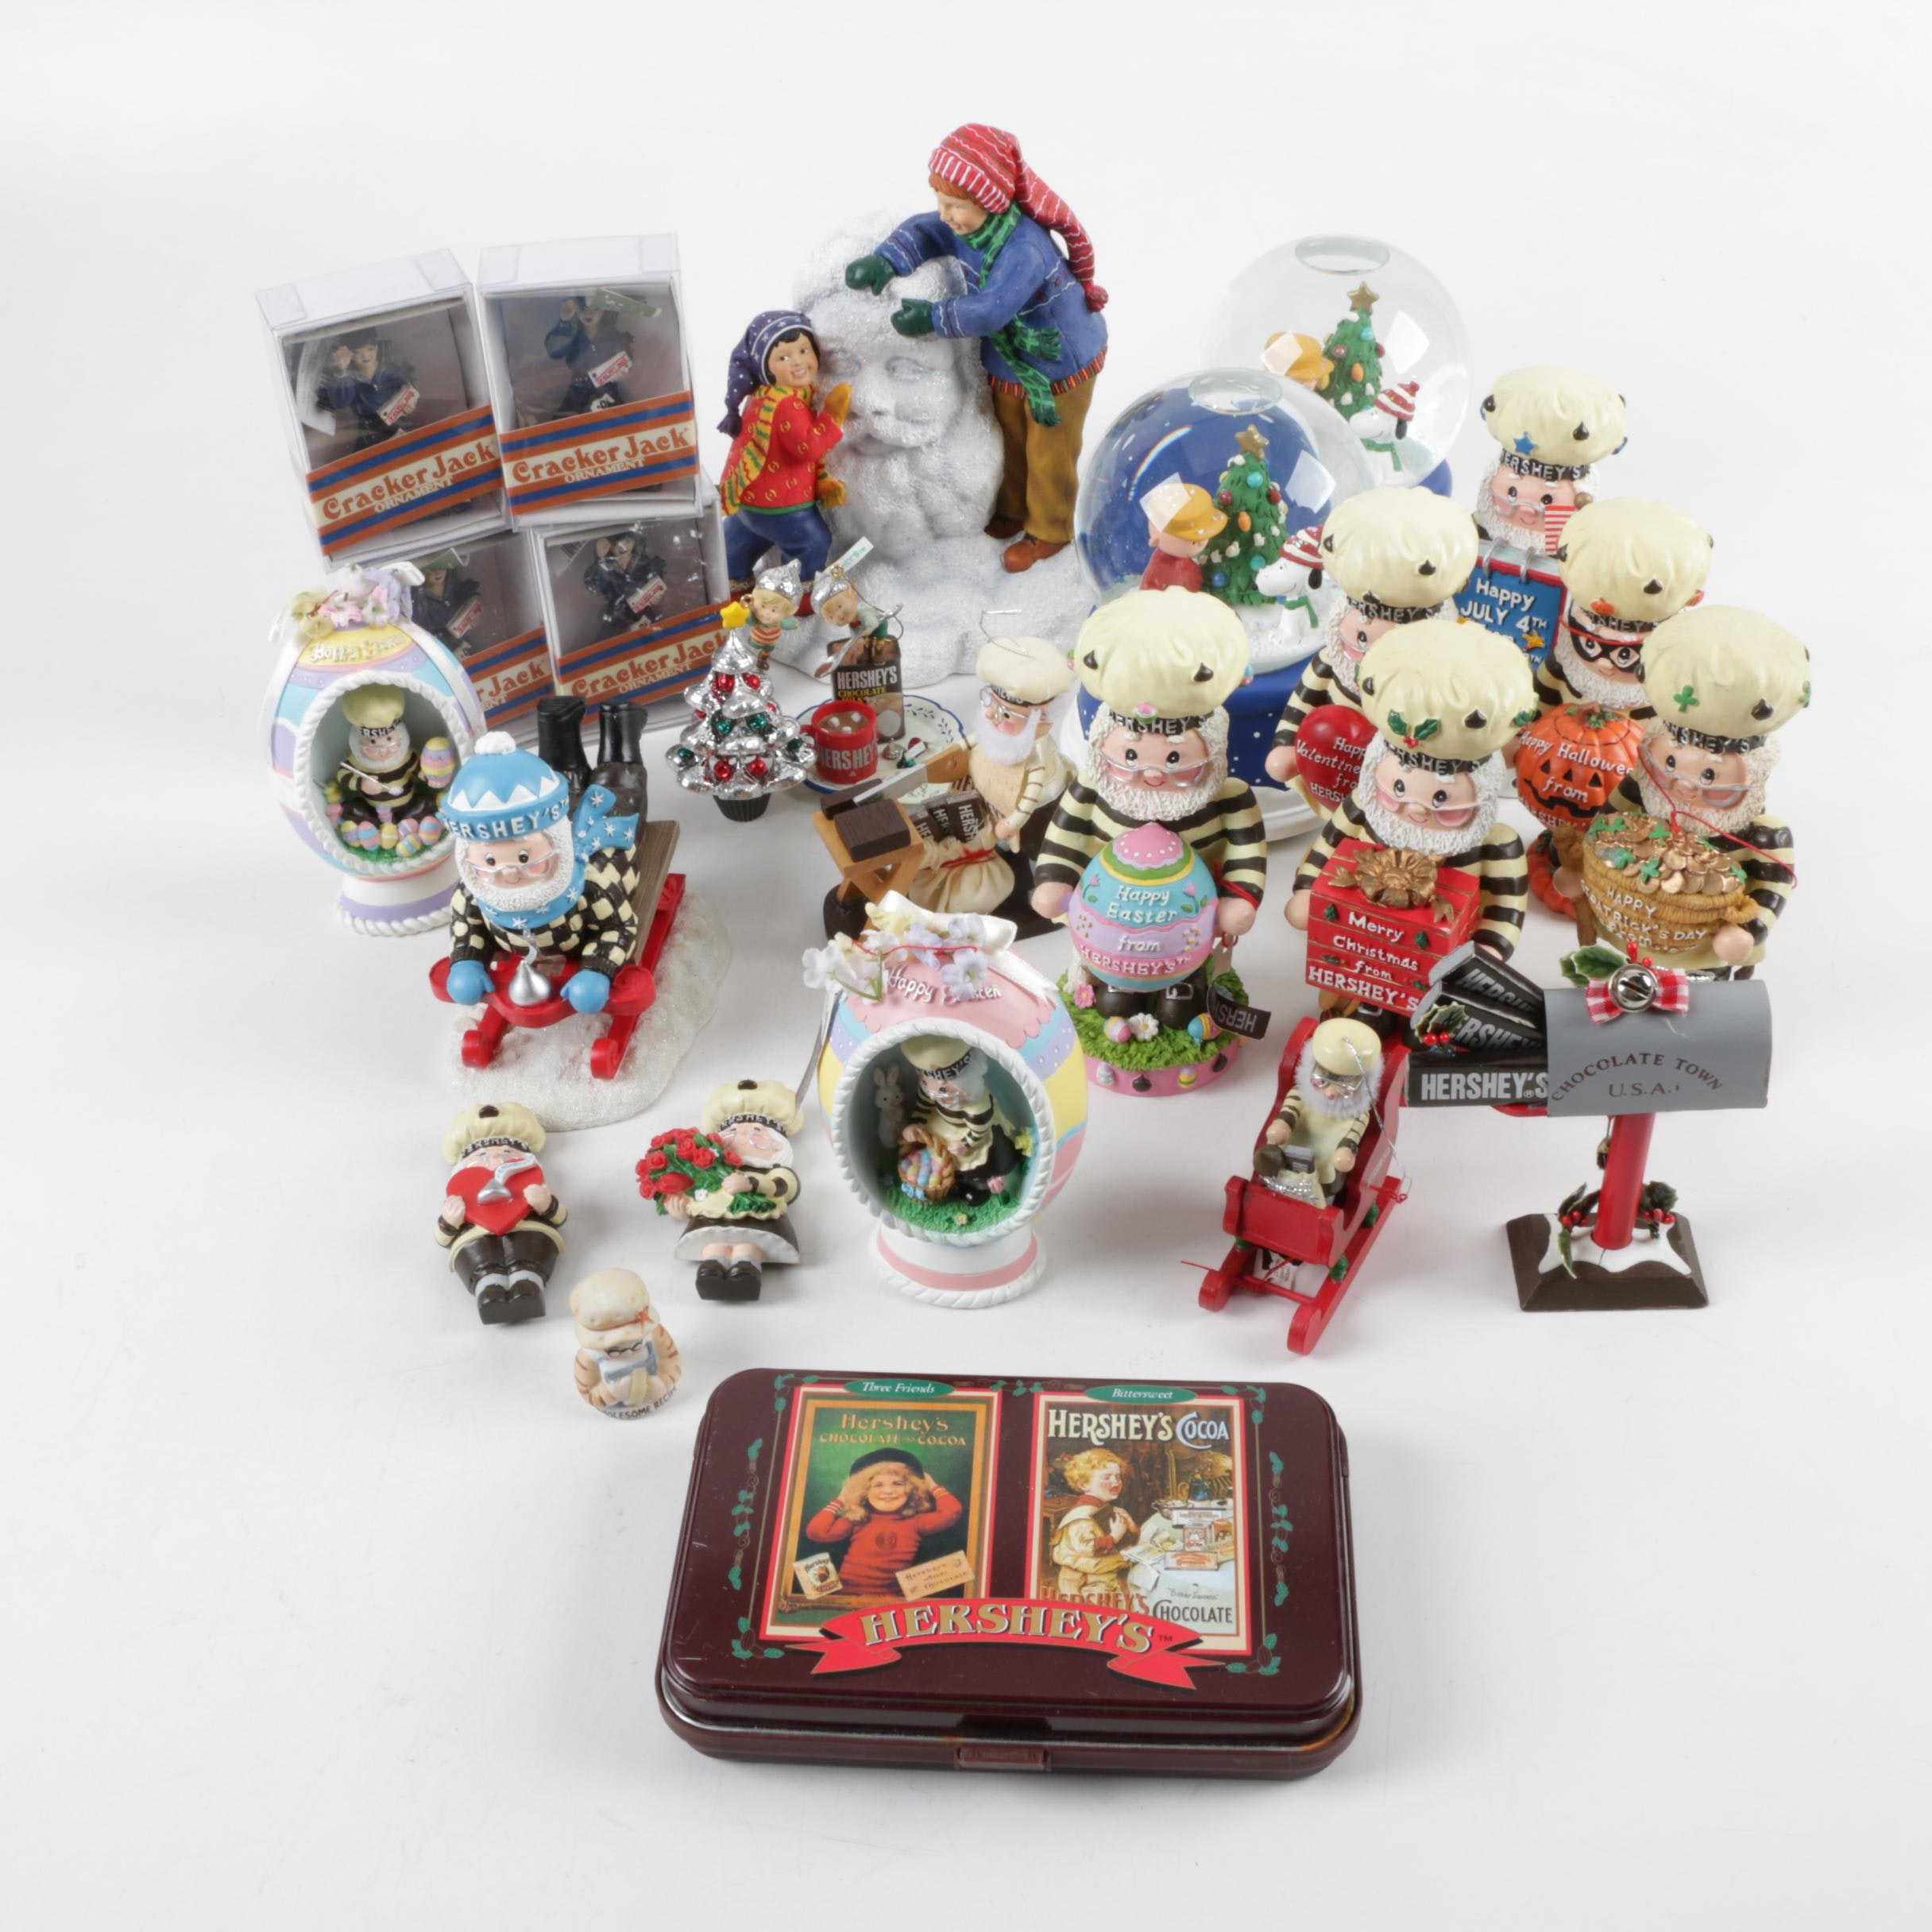 Holiday Decor Featuring Hershey's Collectibles